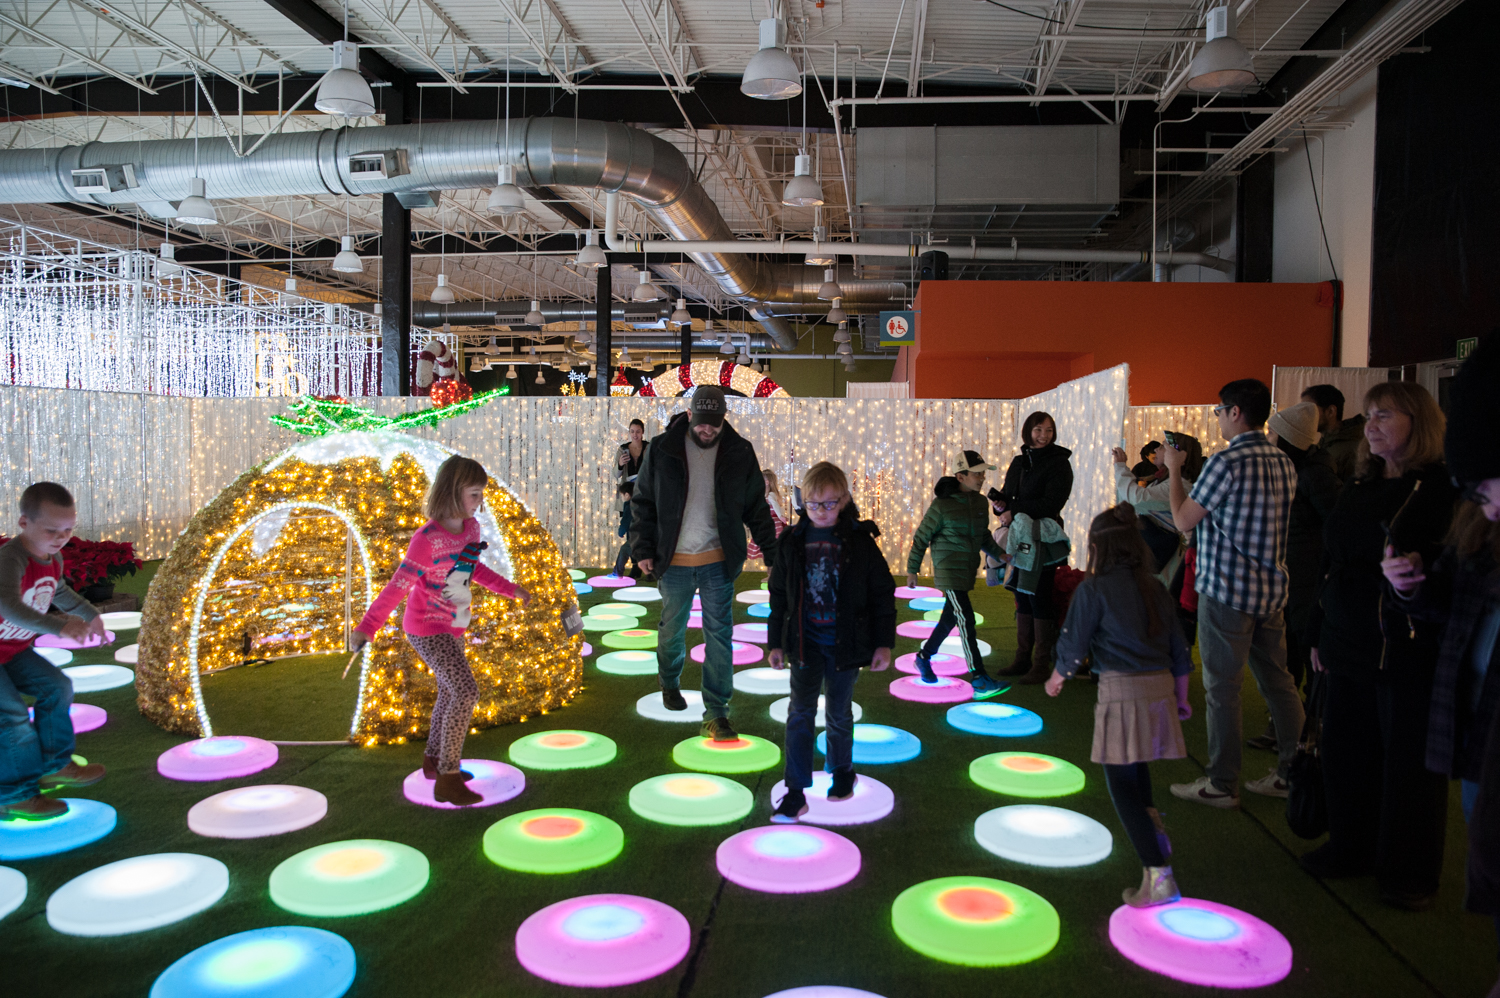 "Lumaze Lost in Lights, the all-indoor Christmas festival and market, makes its debut at Pier 91 on Seattle's Waterfront (aka the cruise ship terminal) this weekend and runs through January 4, 2020. Attendees will find live music, an interactive light maze, vendor market, food , drink and plenty of photo opportunities.{&nbsp;}<a  href=""photos: Brand new indoor Christmas festival on the waterfront boasts 100,000 sq. feet of light displays  Lumaze Lost in Lights, the all-indoor Christmas festival and market, makes its debut at Pier 91 on Seattle%E2%80%99s Waterfront (aka the cruise ship terminal) this weekend and runs through January 4, 2020. Attendees will find live music, an interactive light maze, vendor market, food , drink and plenty of photo opportunities. Tickets start at $19.99. (Image: Elizabeth Crook / Seattle Refined)"" target=""_blank"" title=""Photos: Brand new indoor Christmas festival on the waterfront boasts 100,000 sq. feet of light displays  Lumaze Lost in Lights, the all-indoor Christmas festival and market, makes its debut at Pier 91 on Seattle's Waterfront (aka the cruise ship terminal) this weekend and runs through January 4, 2020. Attendees will find live music, an interactive light maze, vendor market, food , drink and plenty of photo opportunities. Tickets start at $19.99. (Image: Elizabeth Crook / Seattle Refined)"">Tickets start at $19.99</a>. (Image: Elizabeth Crook / Seattle Refined)"